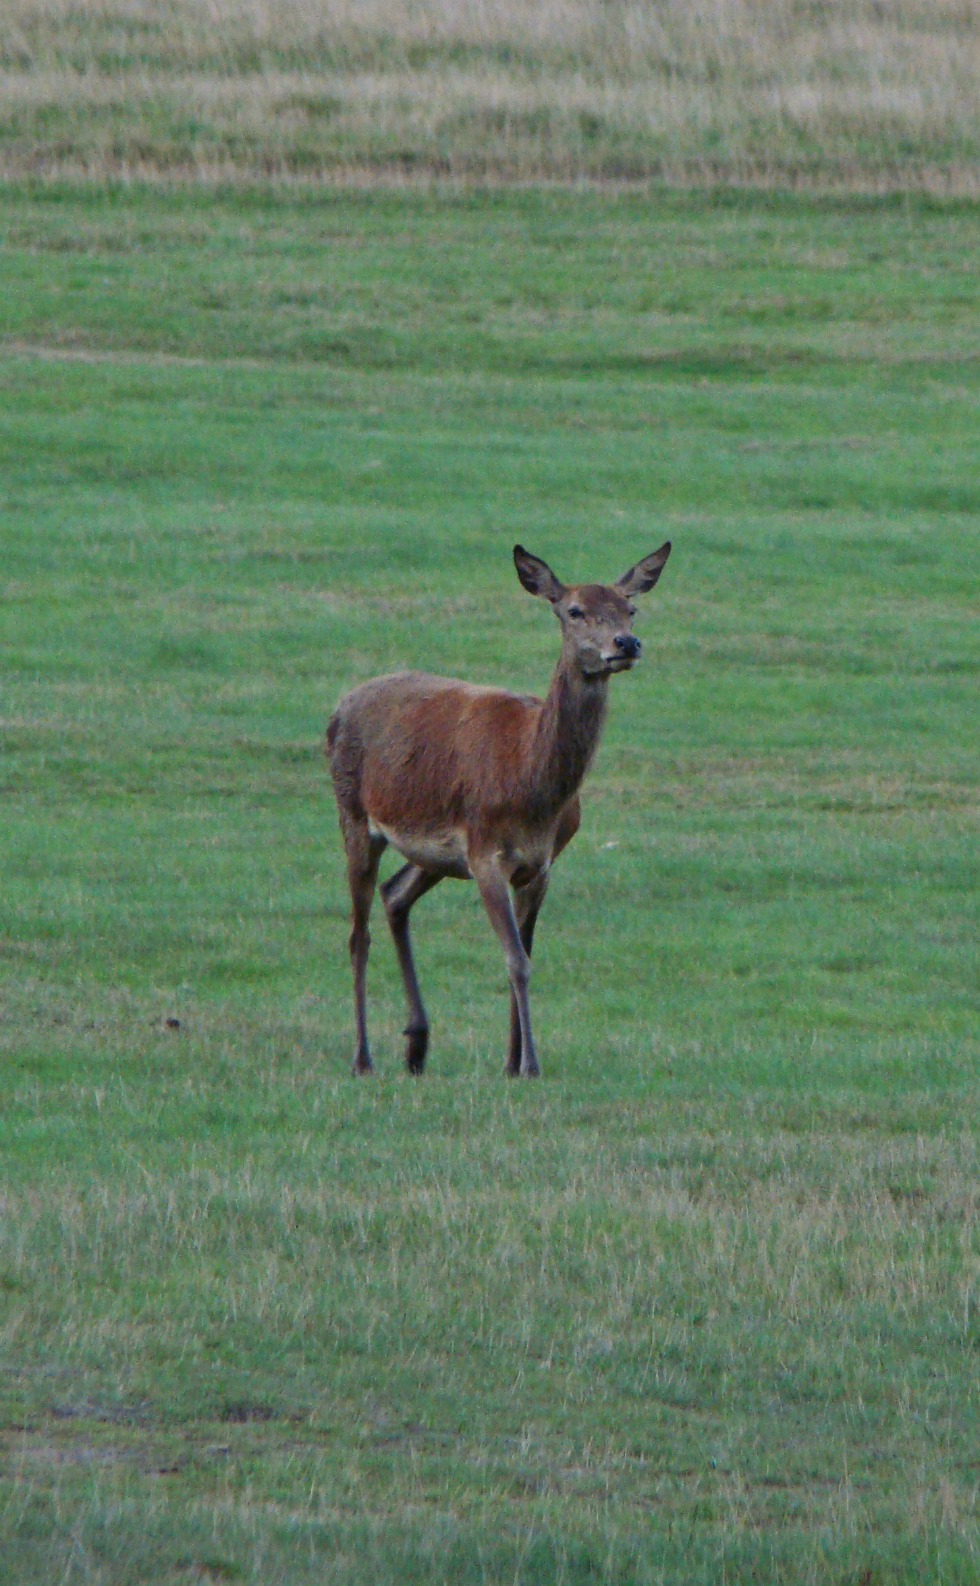 A photograph of a red deer hind in Richmond Park, London